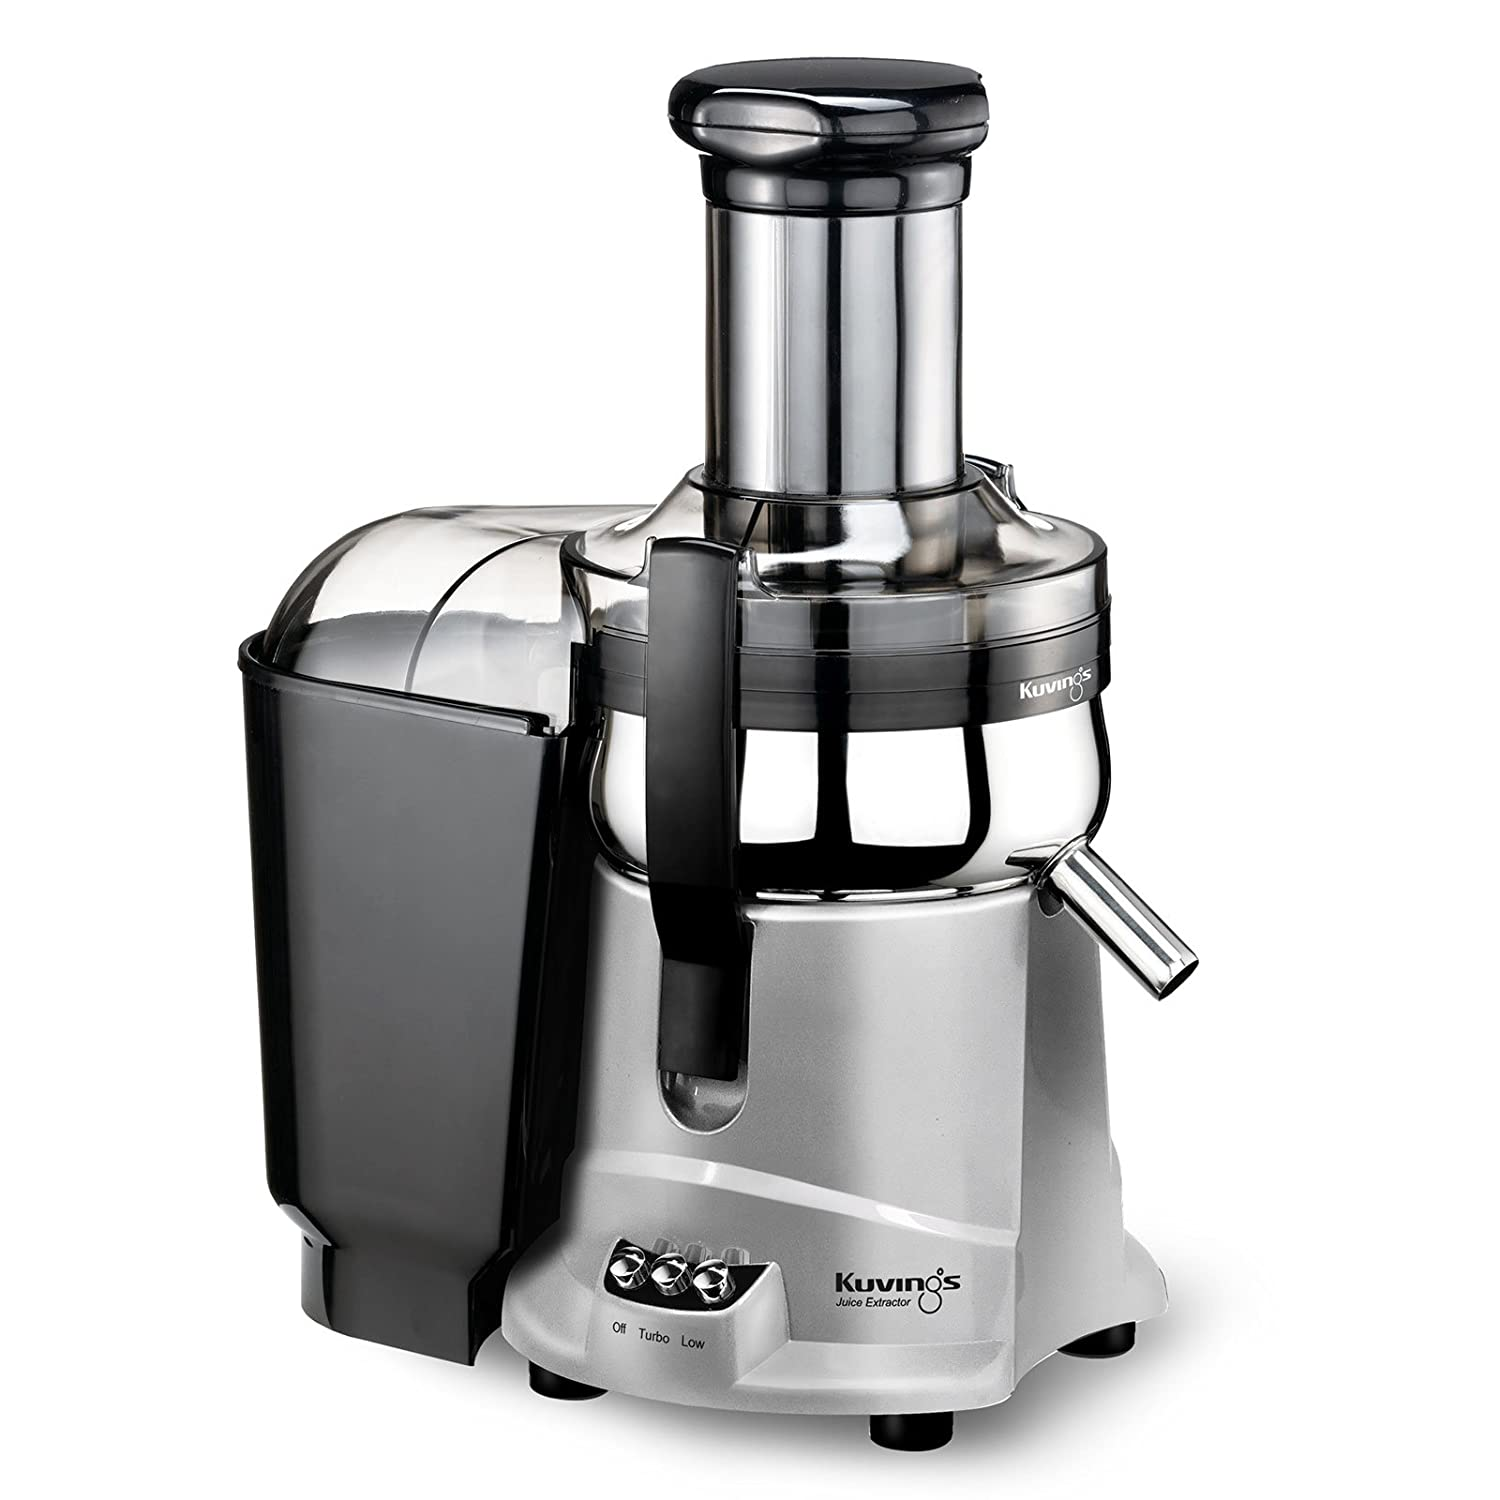 Best Masticating Juicers 2016 : Best Juicer Reviews 2016